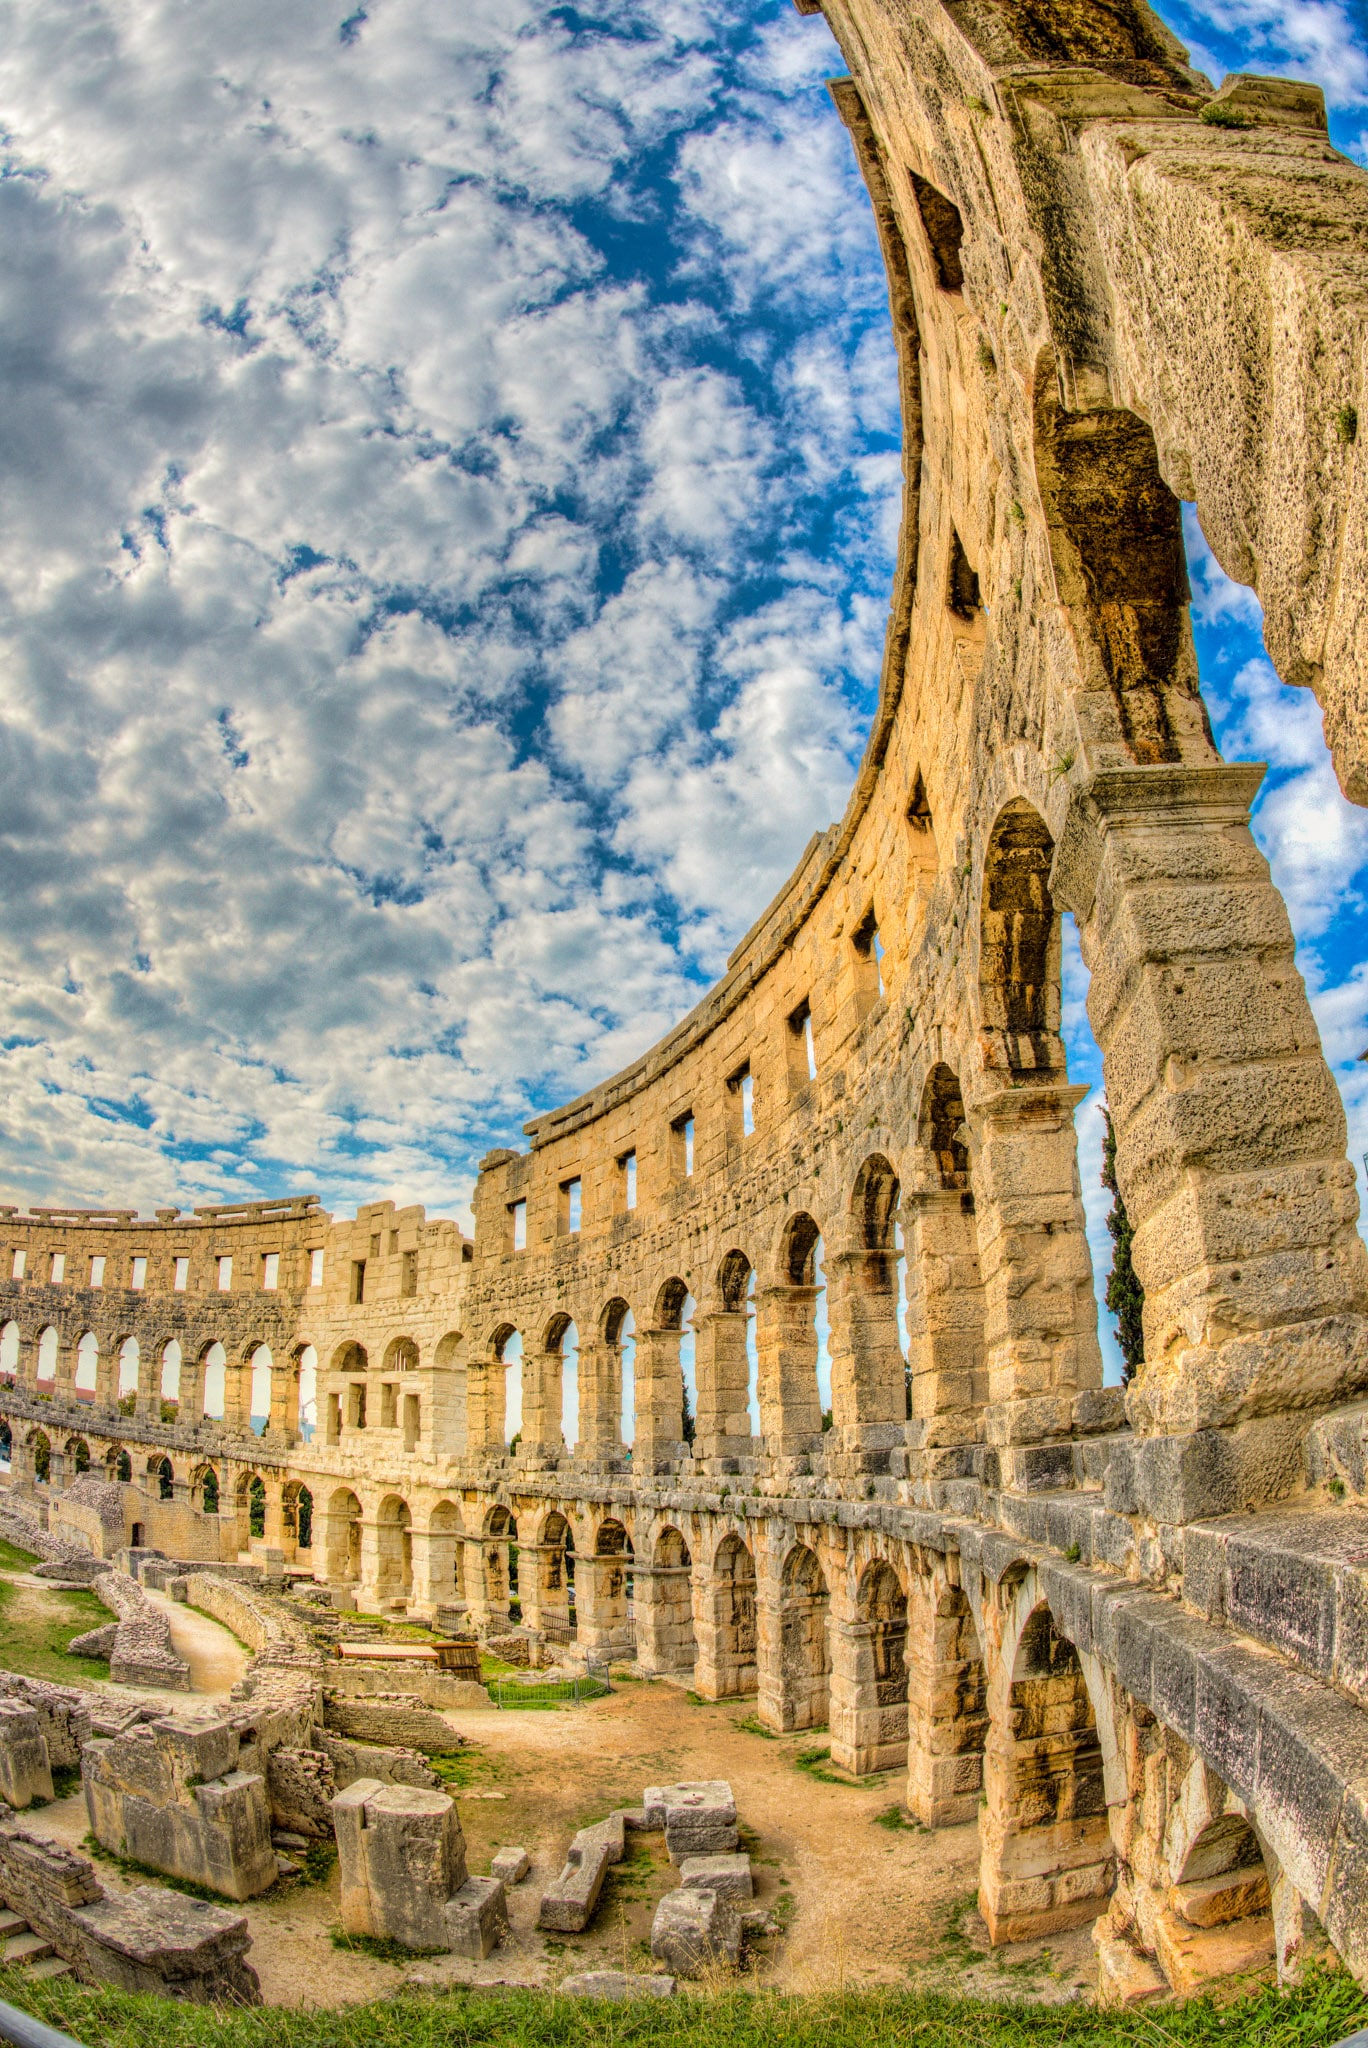 All three orders of Roman architecture are represented in this view of the walls of the Roman amphitheater in the Istrian city of Pula, Croatia.